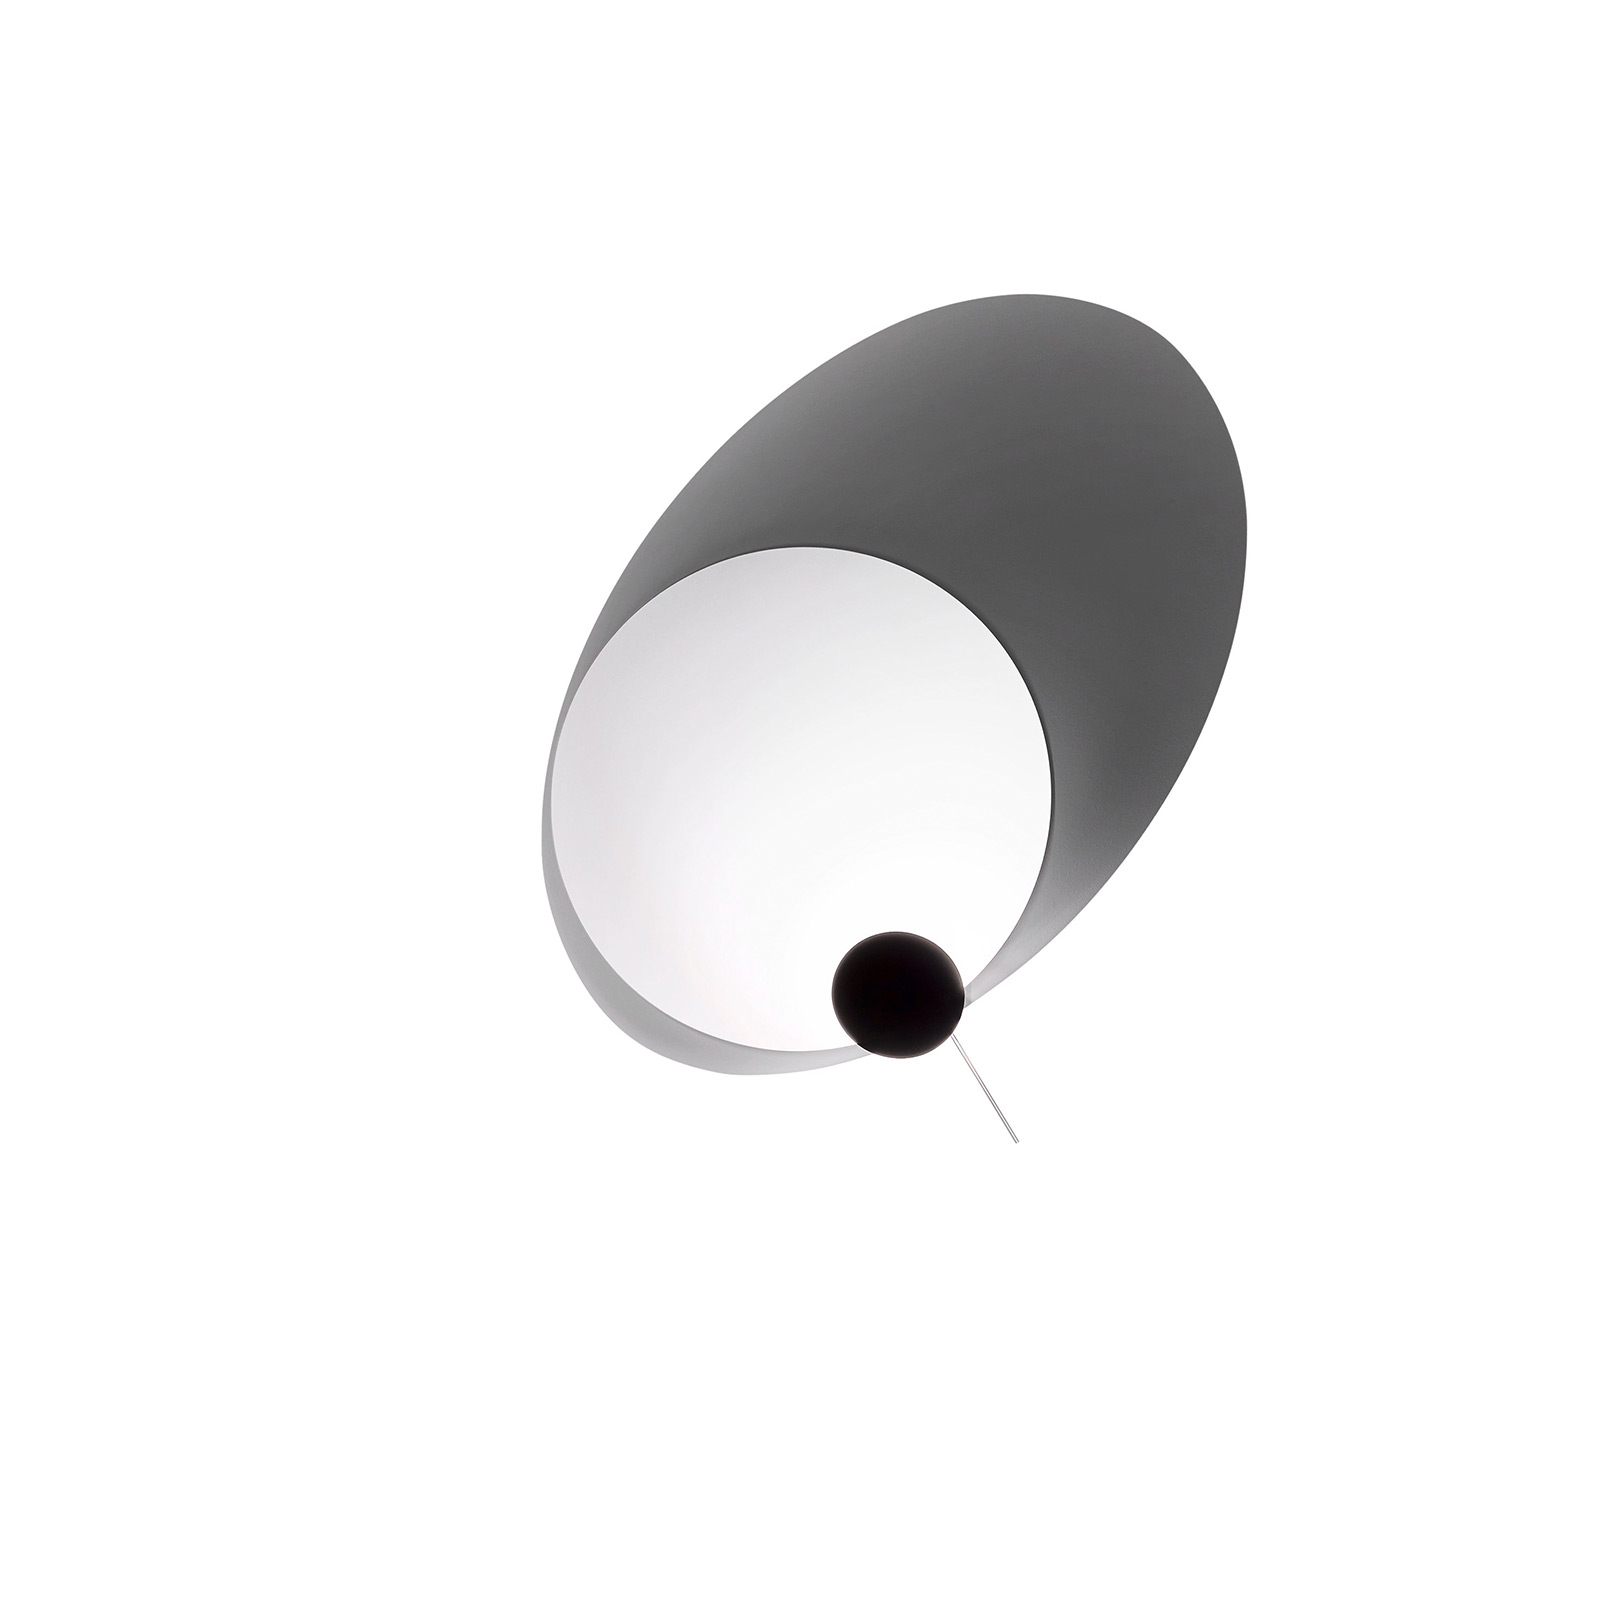 Ingo Maurer Eclipse LED-vegglampe